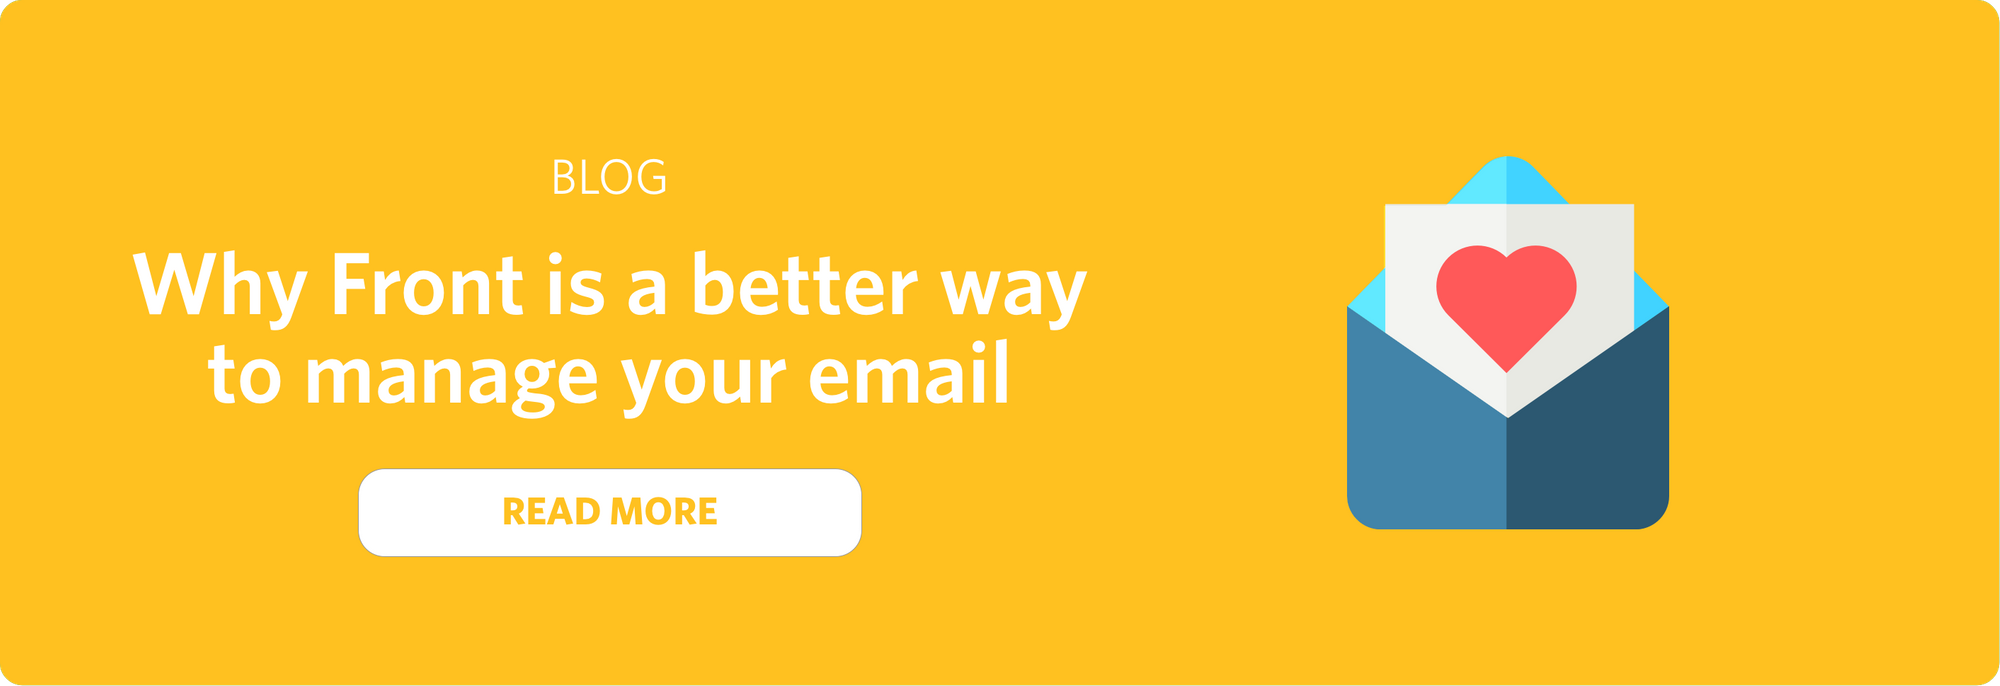 why-front-is-a-better-way-to-manage-your-email